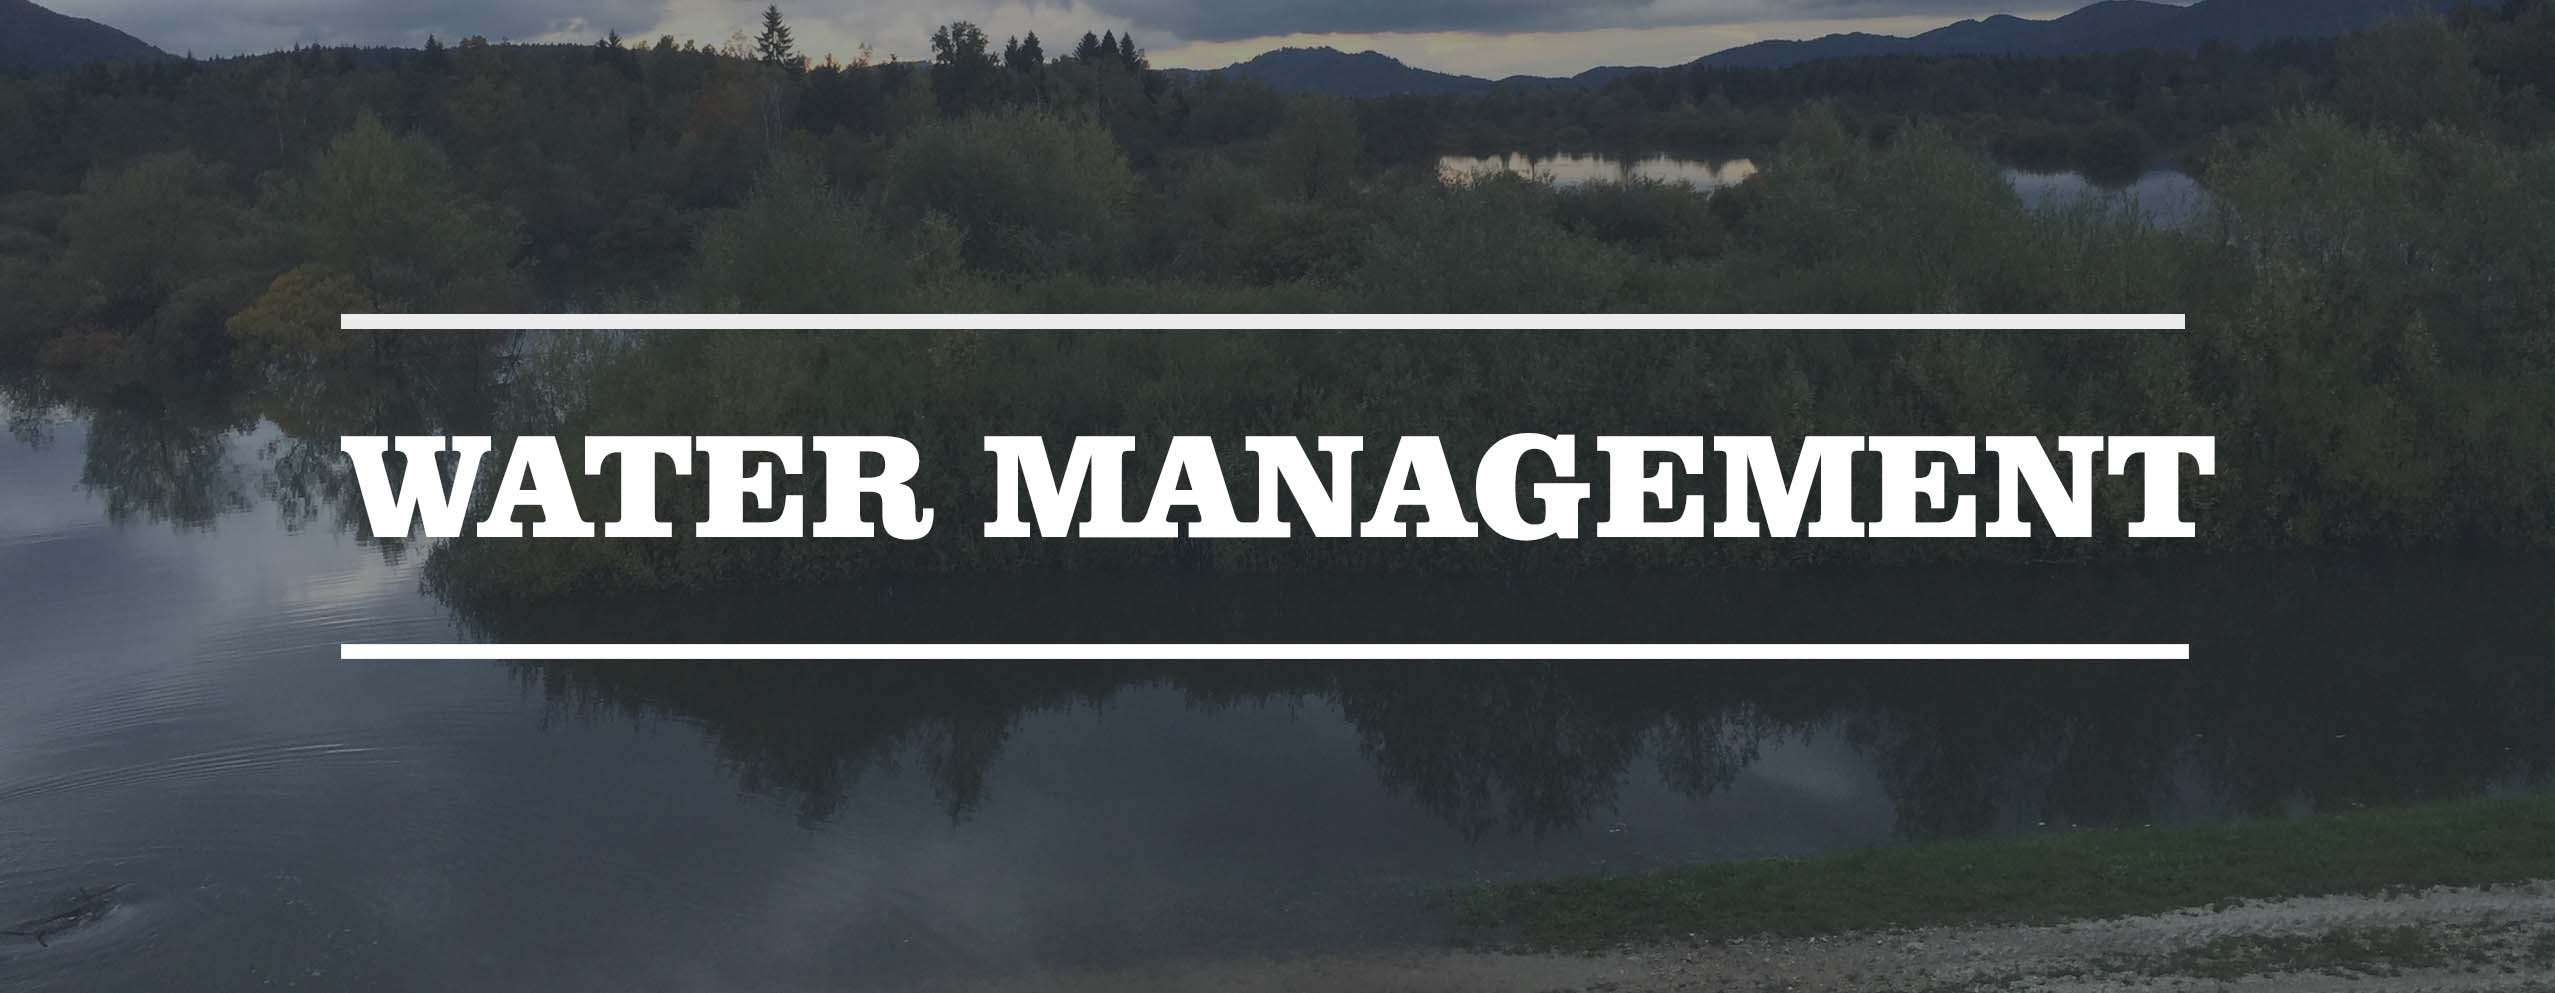 Water management